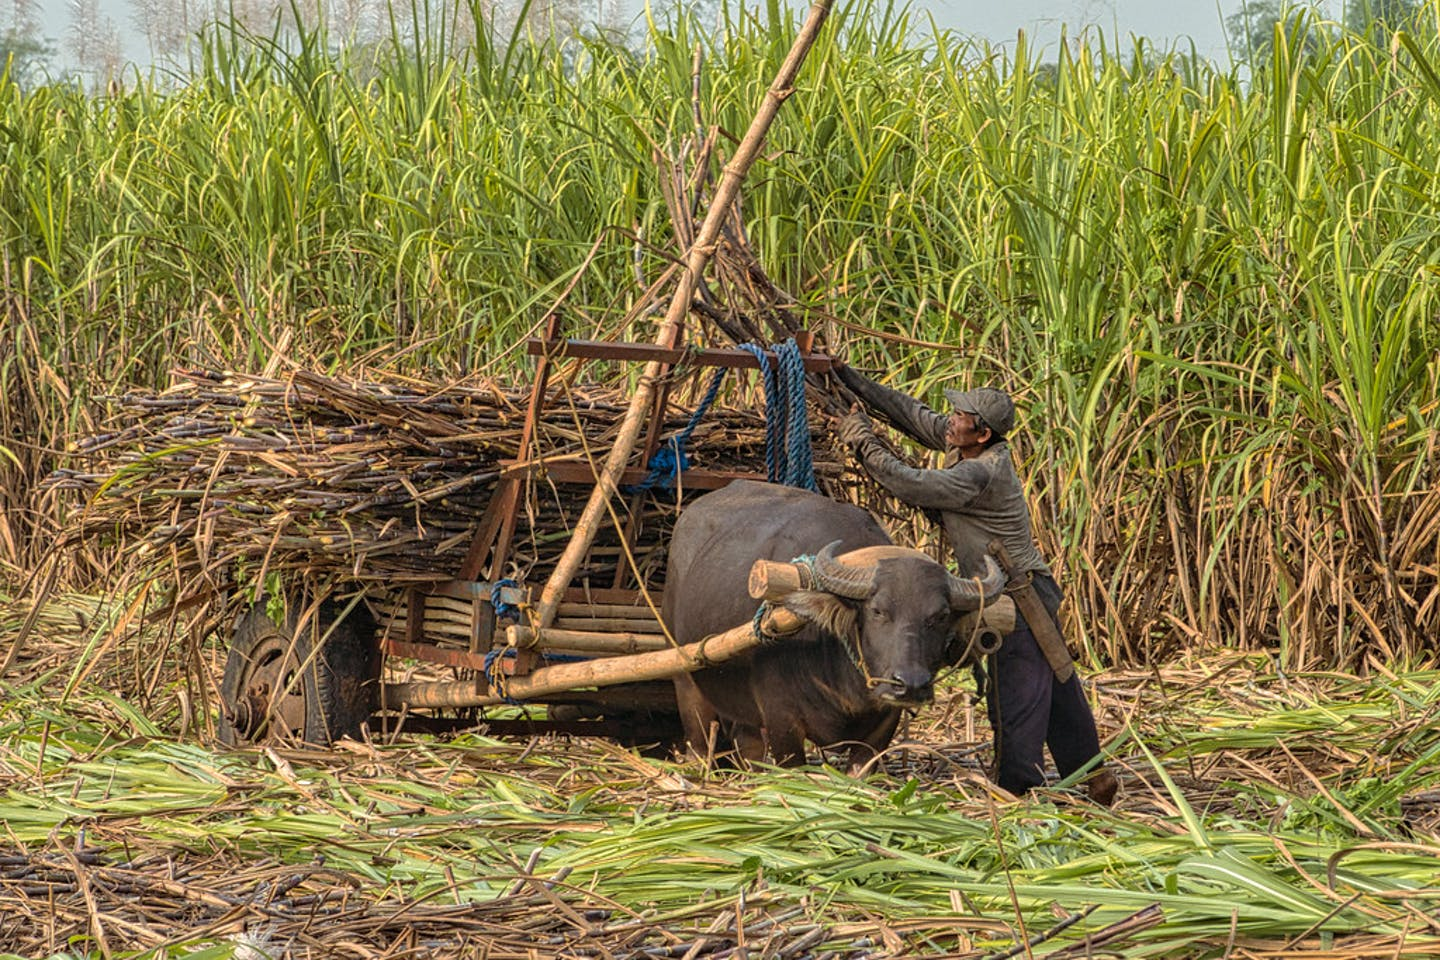 A sugarcane farmer in Talisay, Western Visayas in the Philippines.